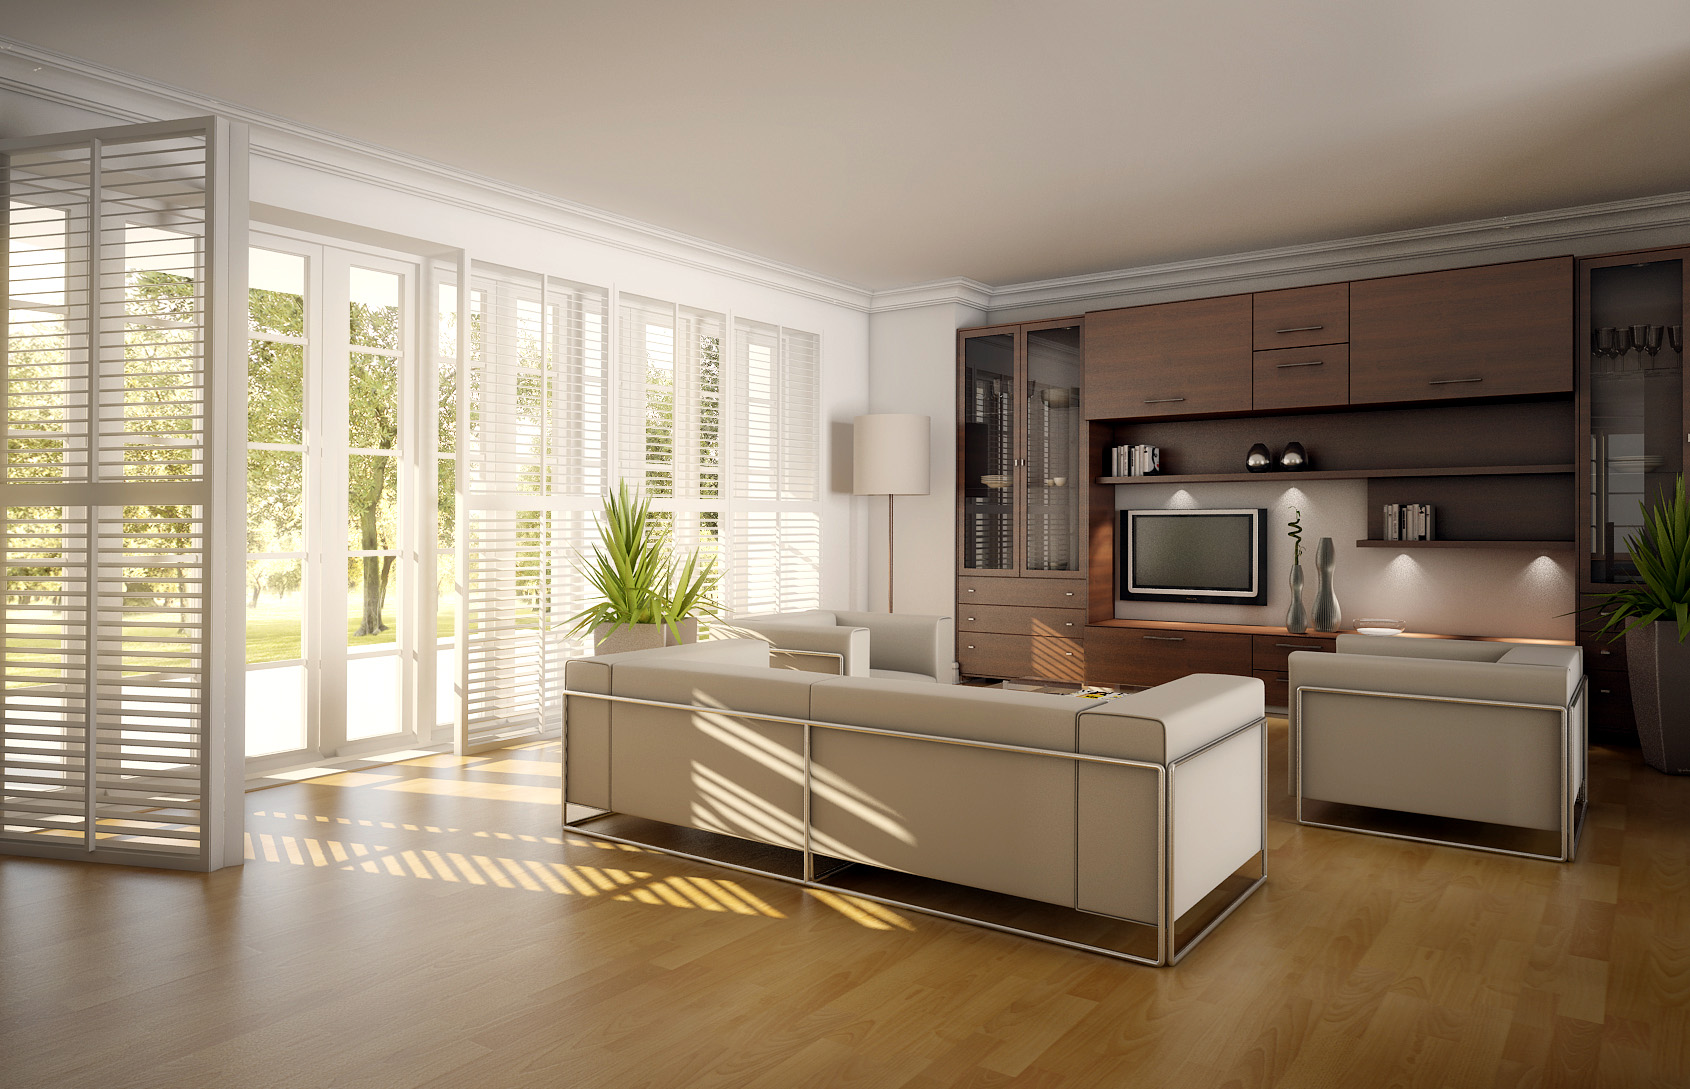 how to design your living room una comedor abierto al jard 237 n 171 imagotechnics 24358